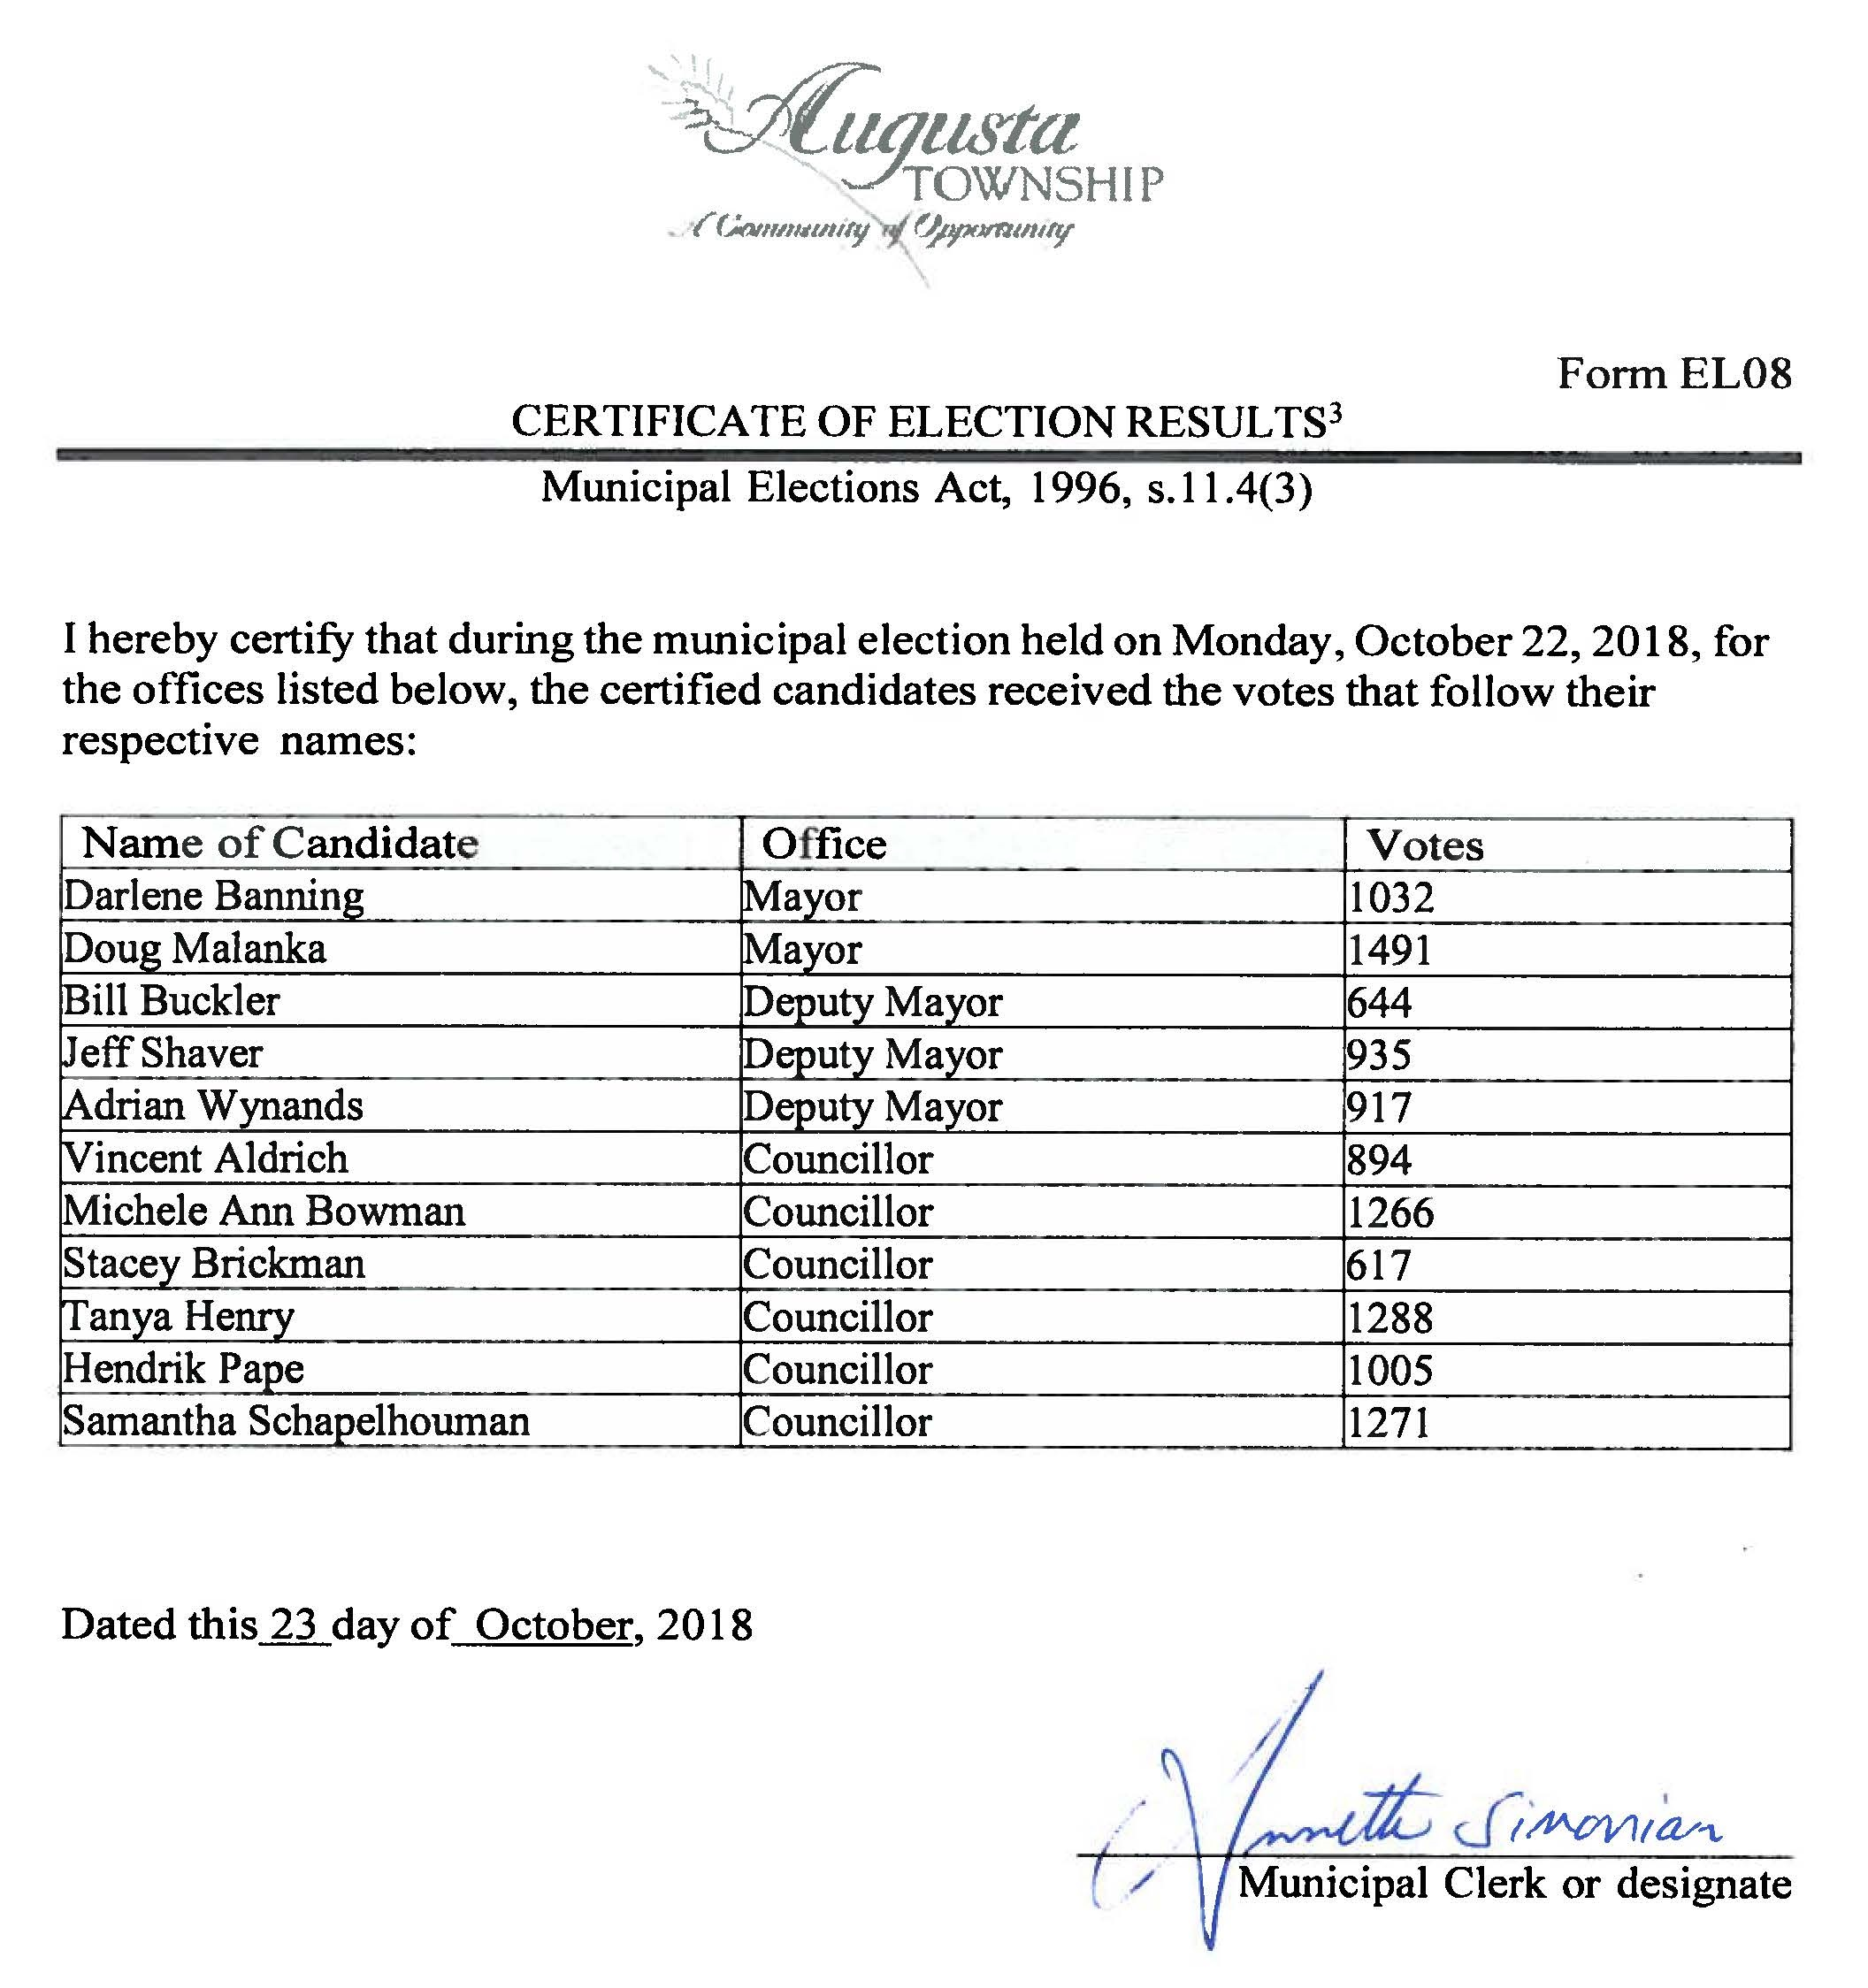 list of candidates and number of votes collected by each